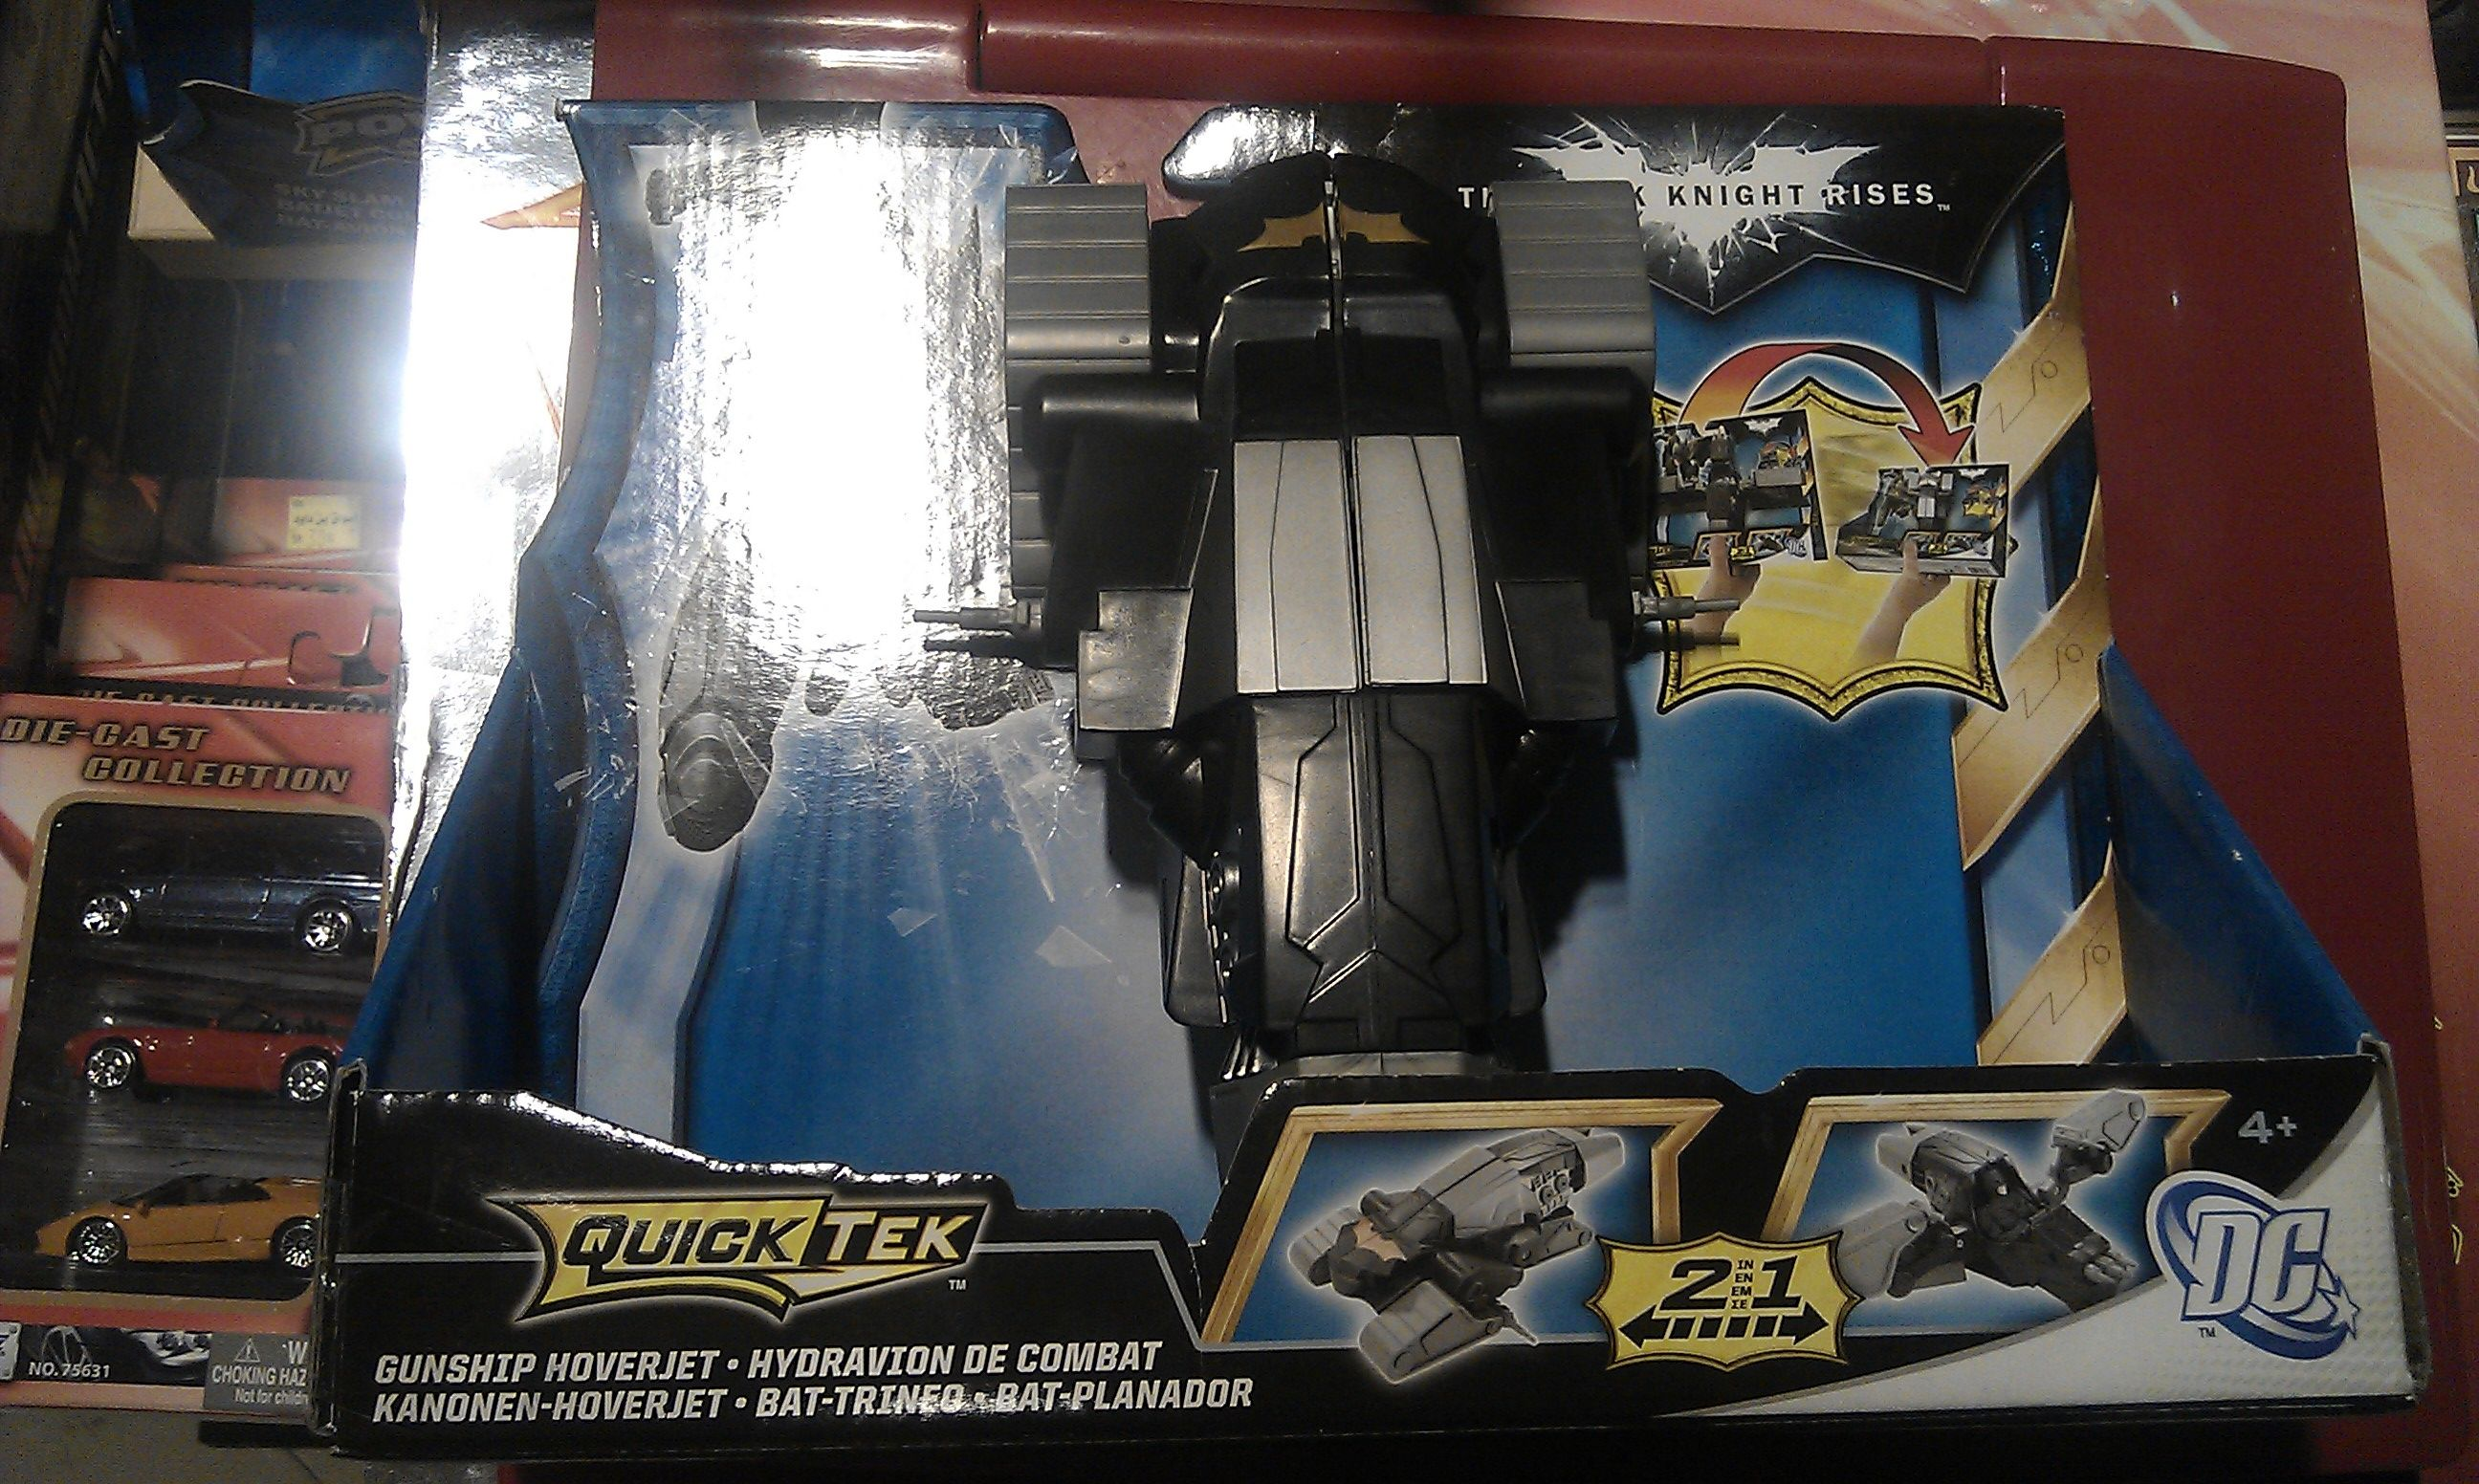 Batman The Dark Knight Rises - Quicktek Gunship Hoverjet